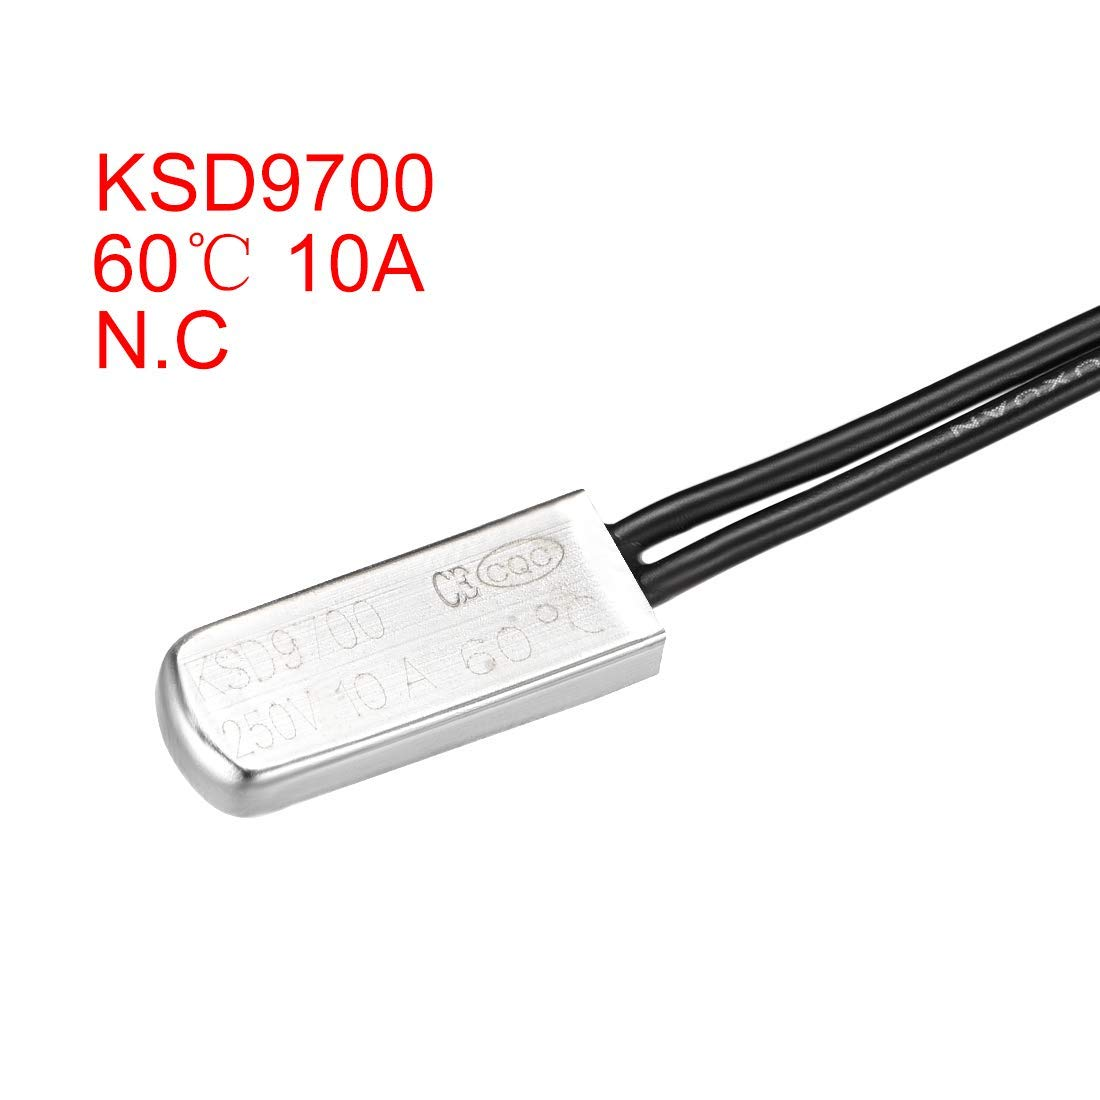 60 ℃ Normally Closed Temperature Switch Thermal Switch N.C 10A 2-Piece Metal bimetallic Temperature Controller KSD9700 Thermostat